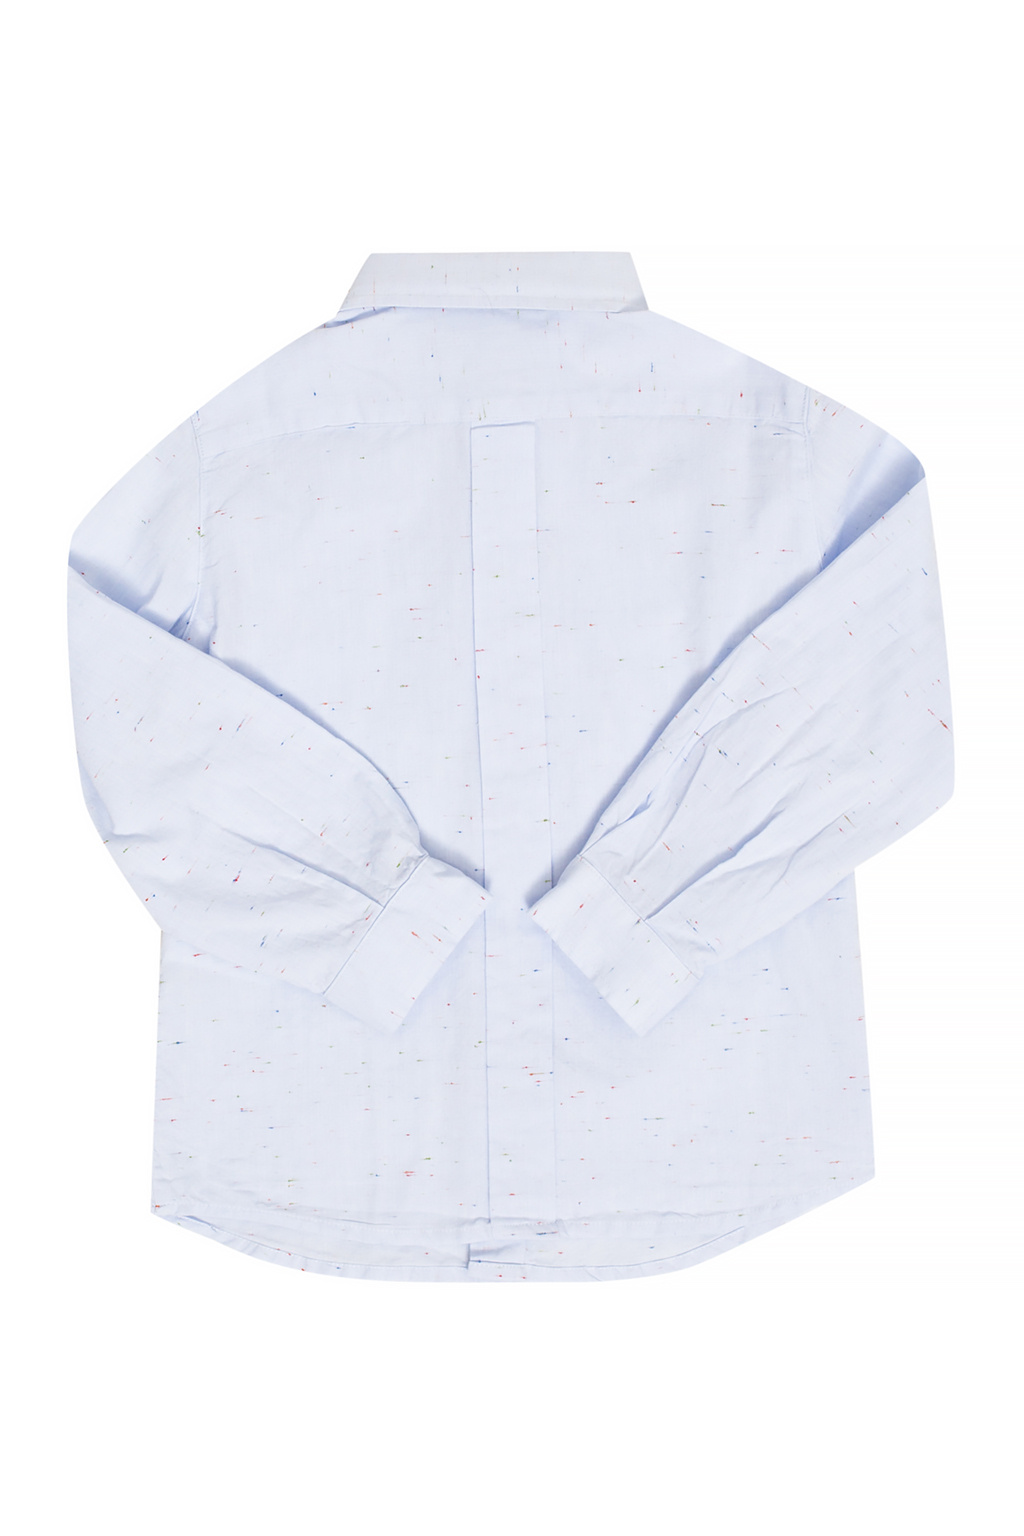 Bonpoint  Shirt with stitching details